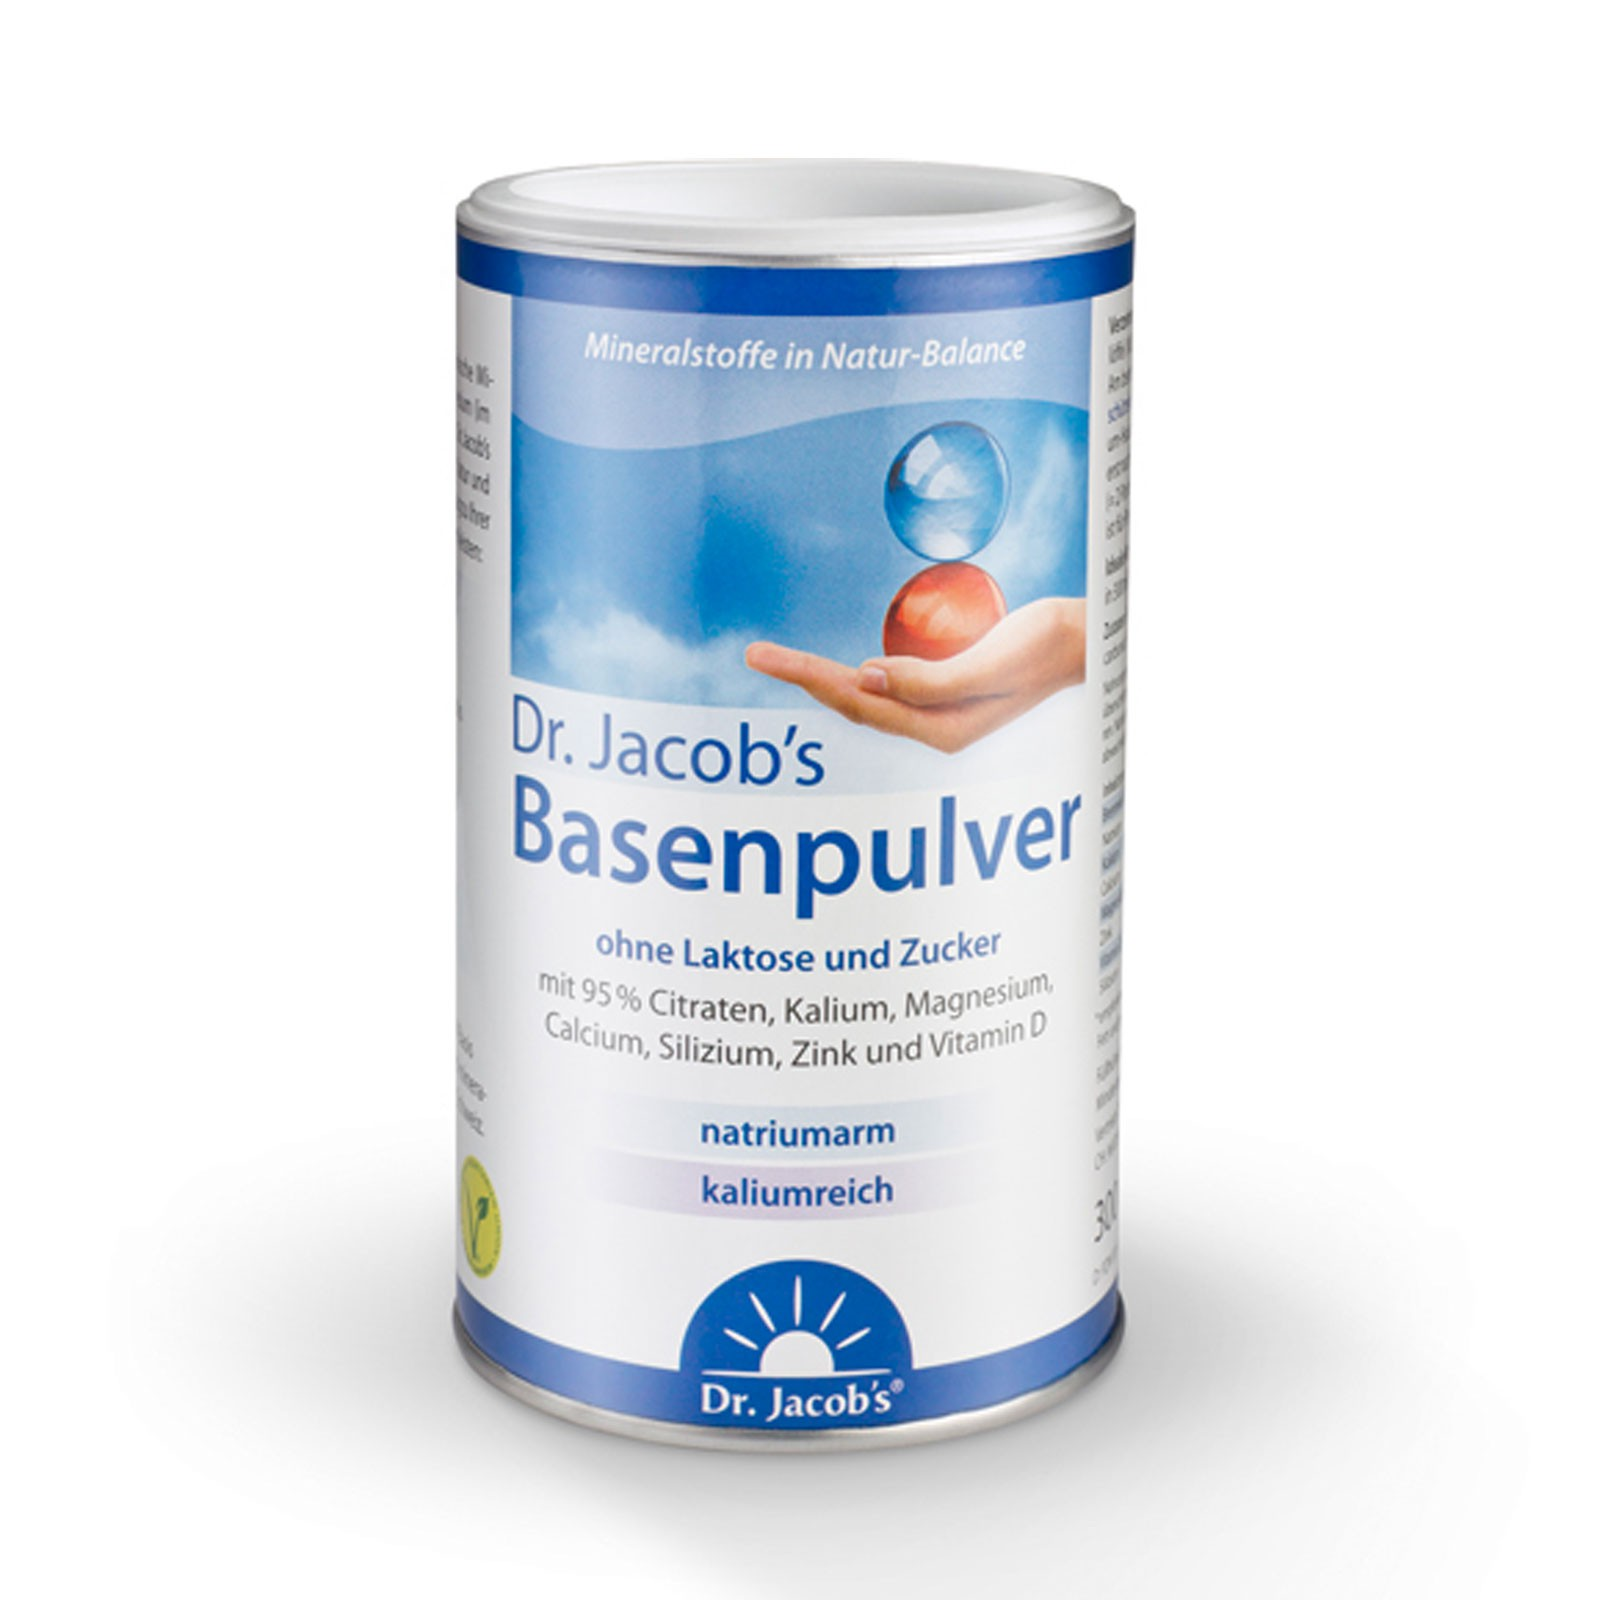 dr jacob 39 s basenpulver 300 g basenwelt basenpulver tabletten. Black Bedroom Furniture Sets. Home Design Ideas